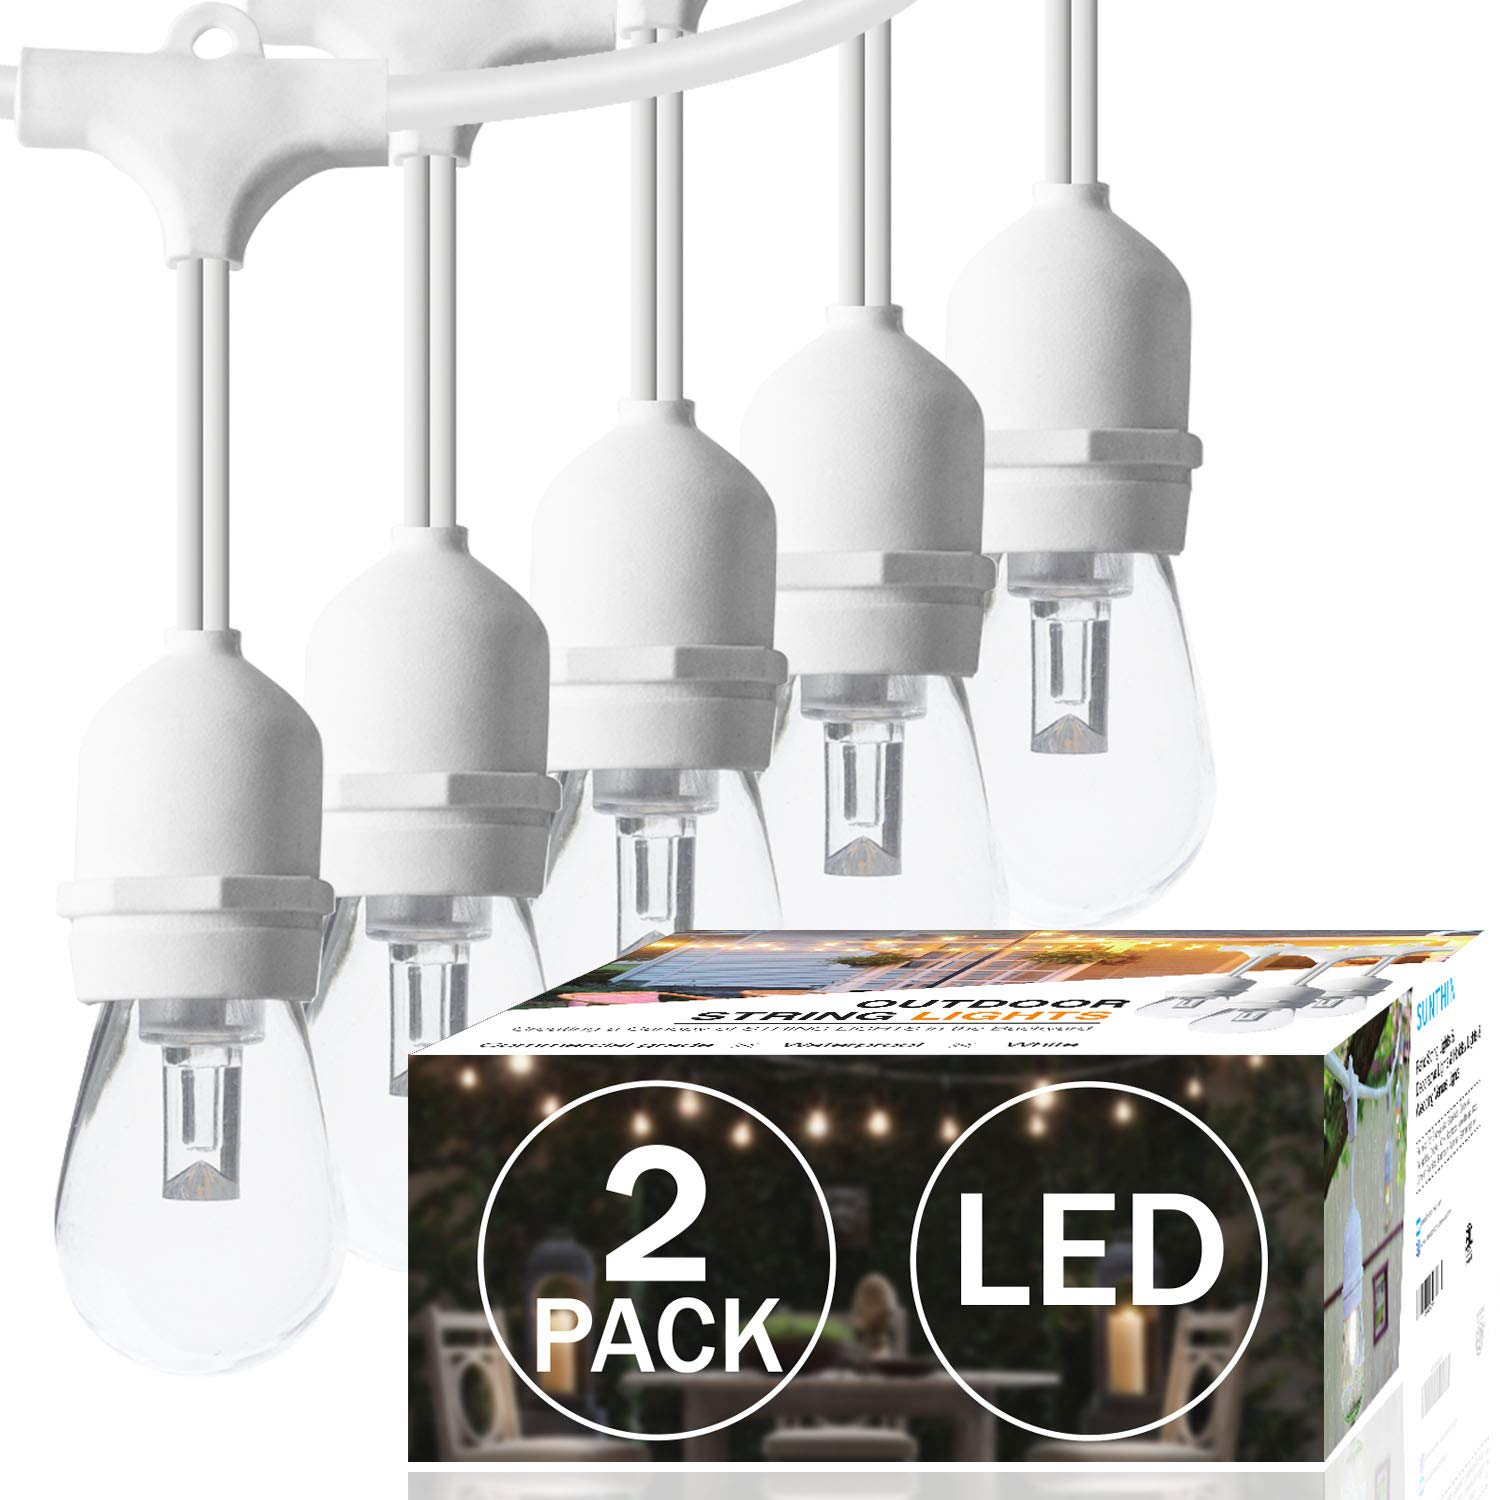 SUNTHIN 2-Pack 48ft LED Outdoor String Lights Hanging light 18 x 0.9 Watt S14 Edison Bulbs 18 x 0.9 Wat Patio Lights With White Cord Waterproof wedding String lighting 3 Spares 15 x E26 Sockets